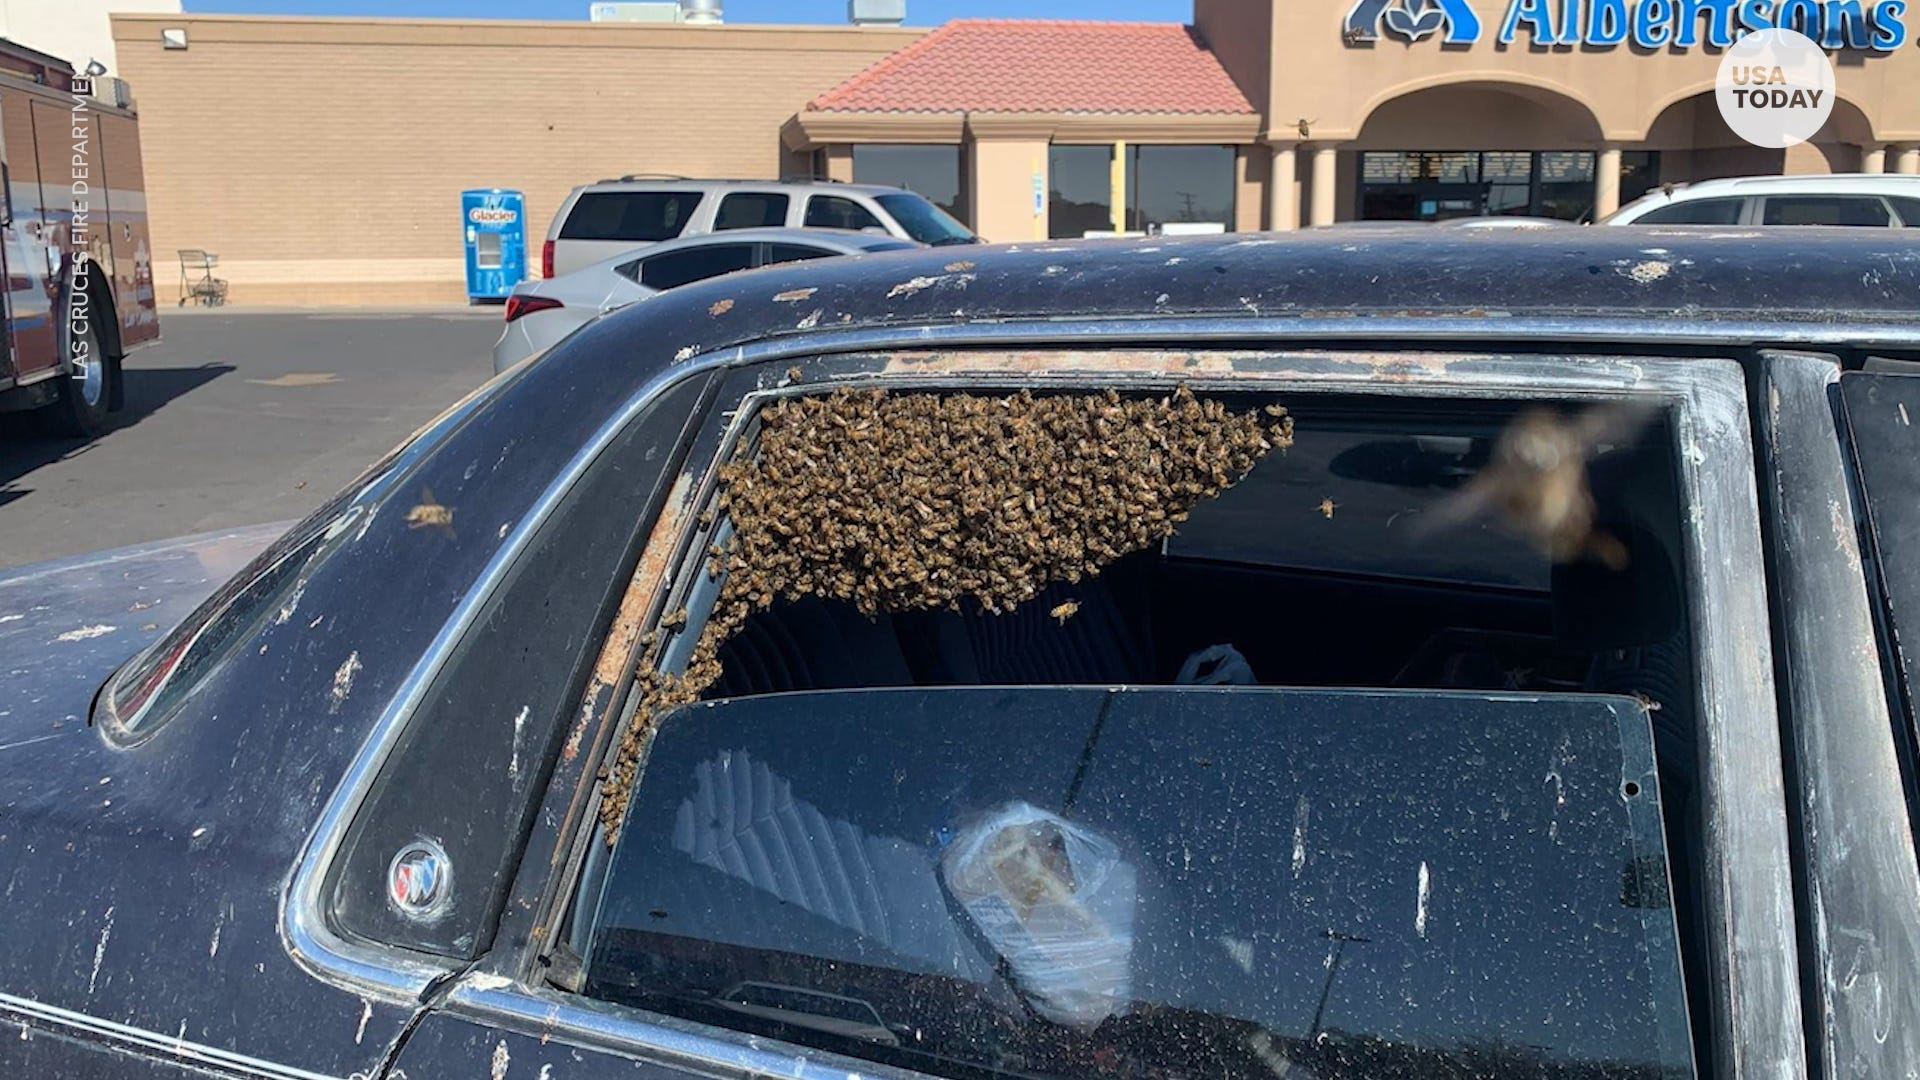 A firefighter and beekeeper helped remove 15,000 bees from parked car